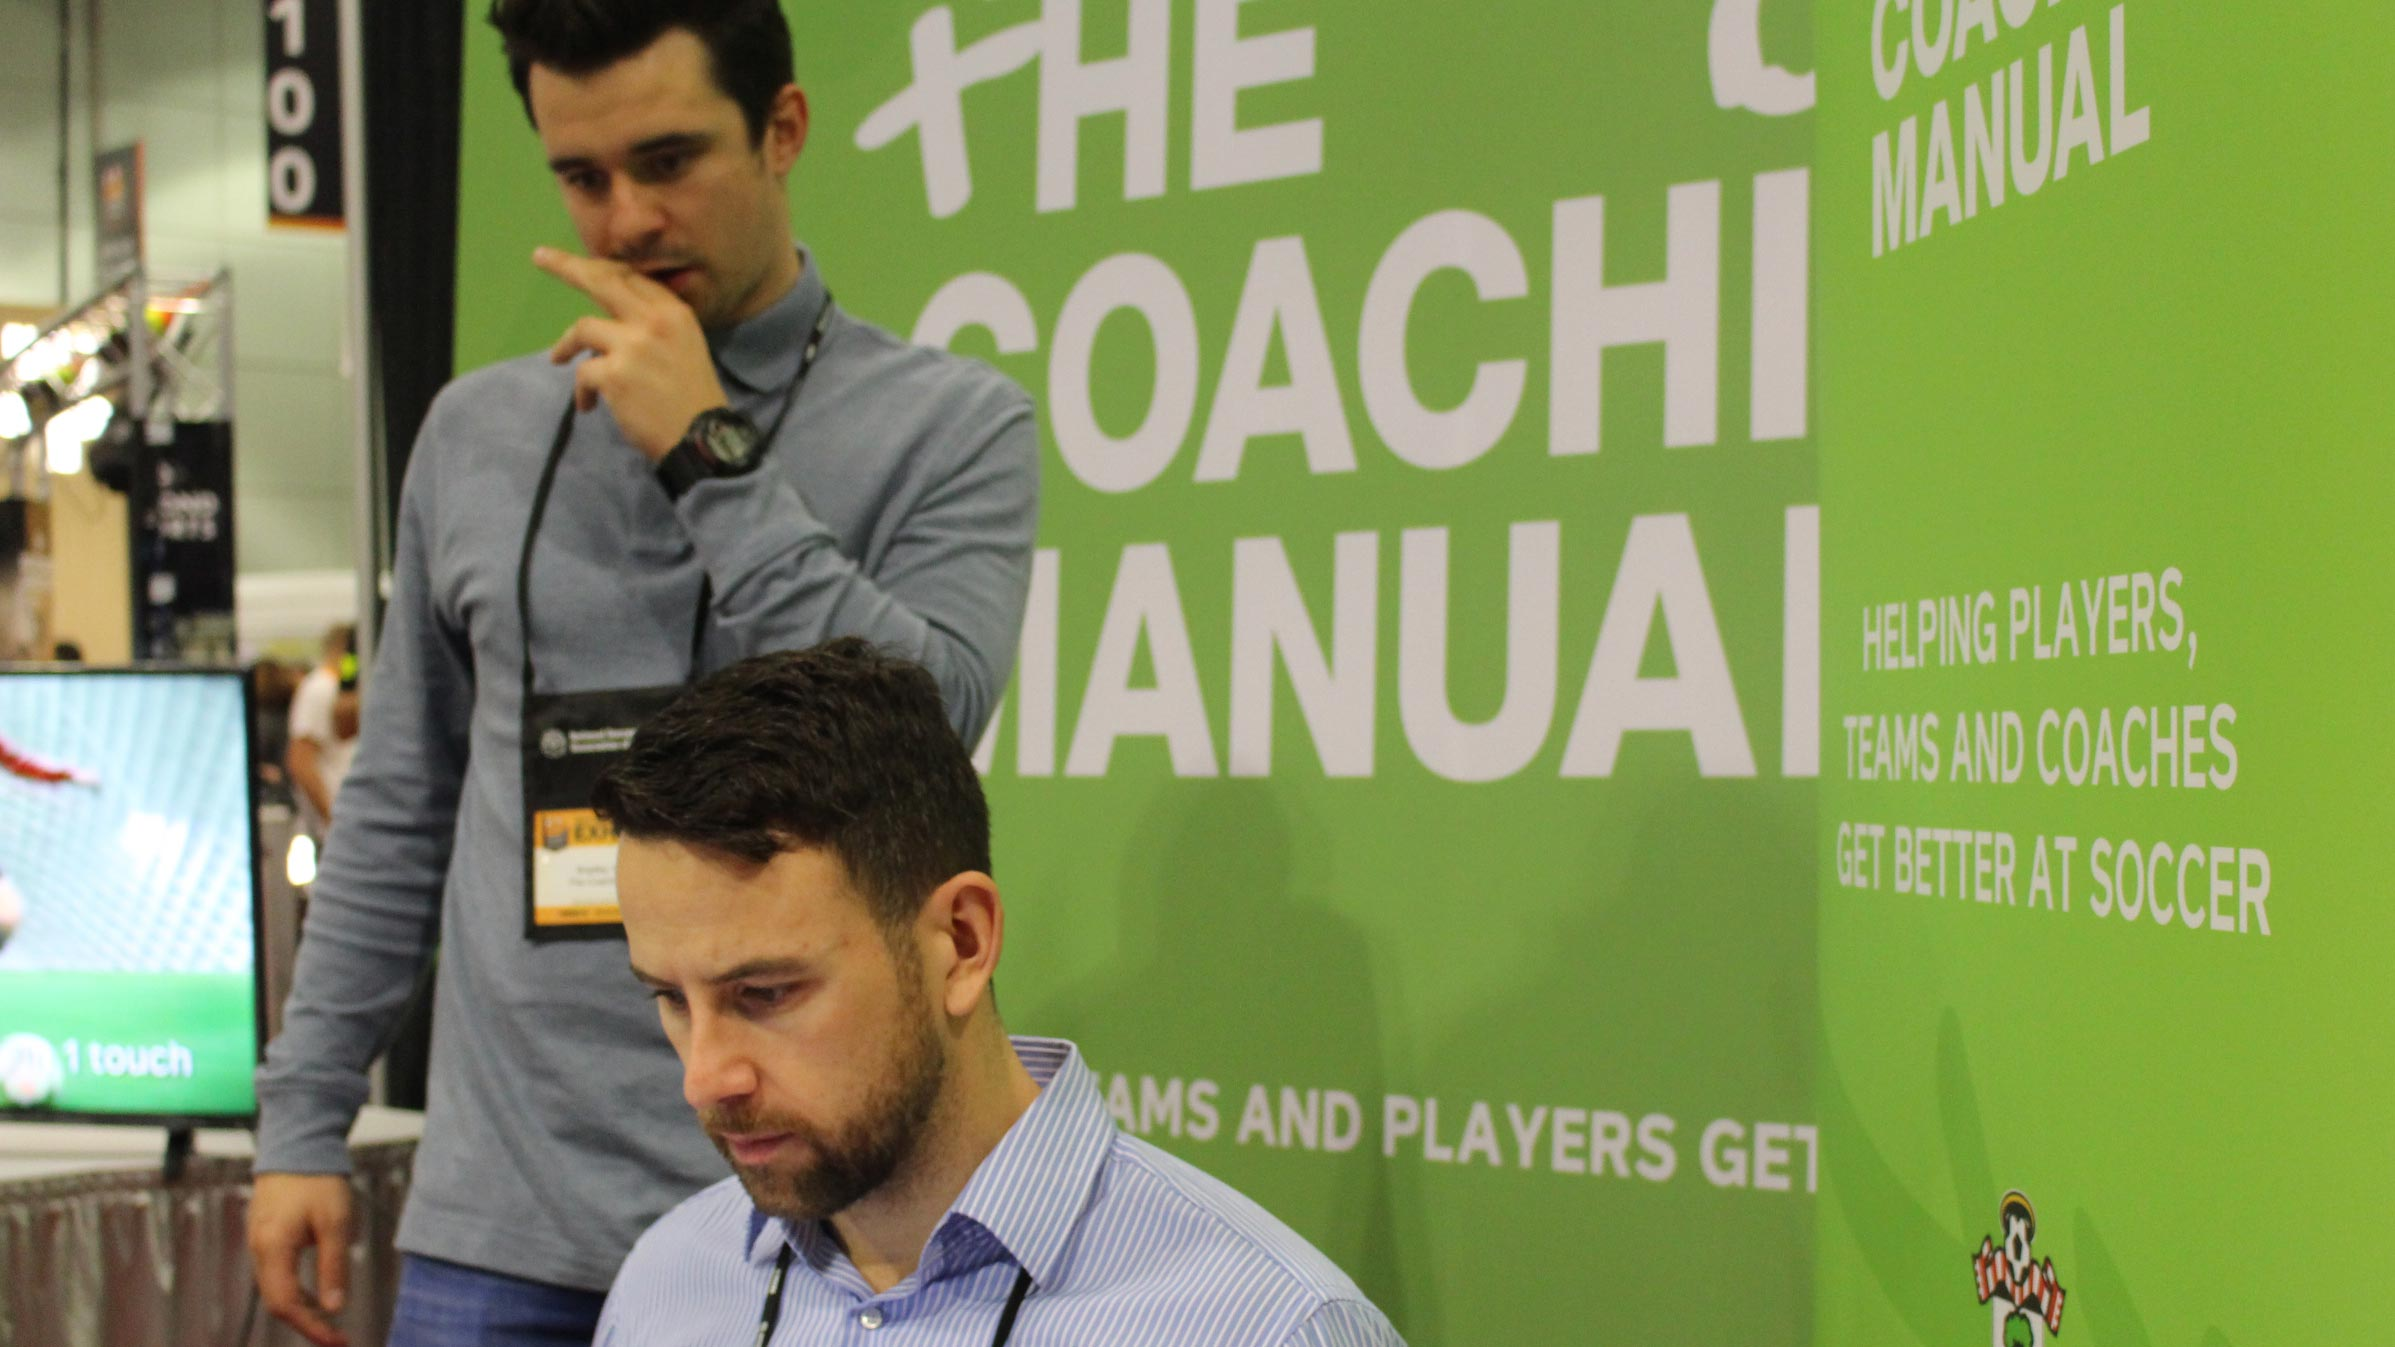 Members of The Coaching Manual at work